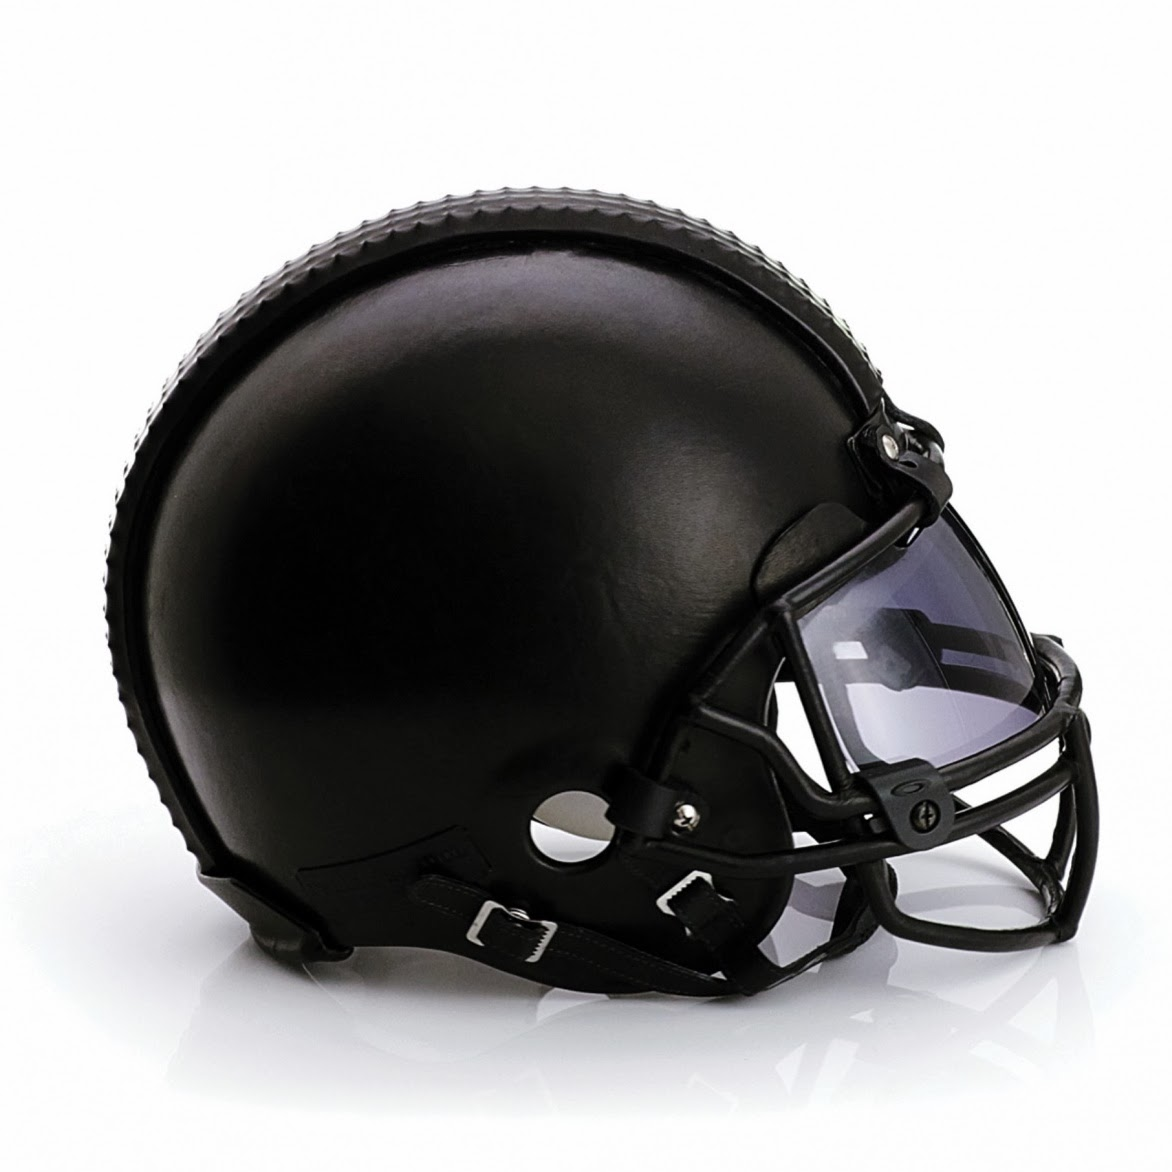 Custom football helmets